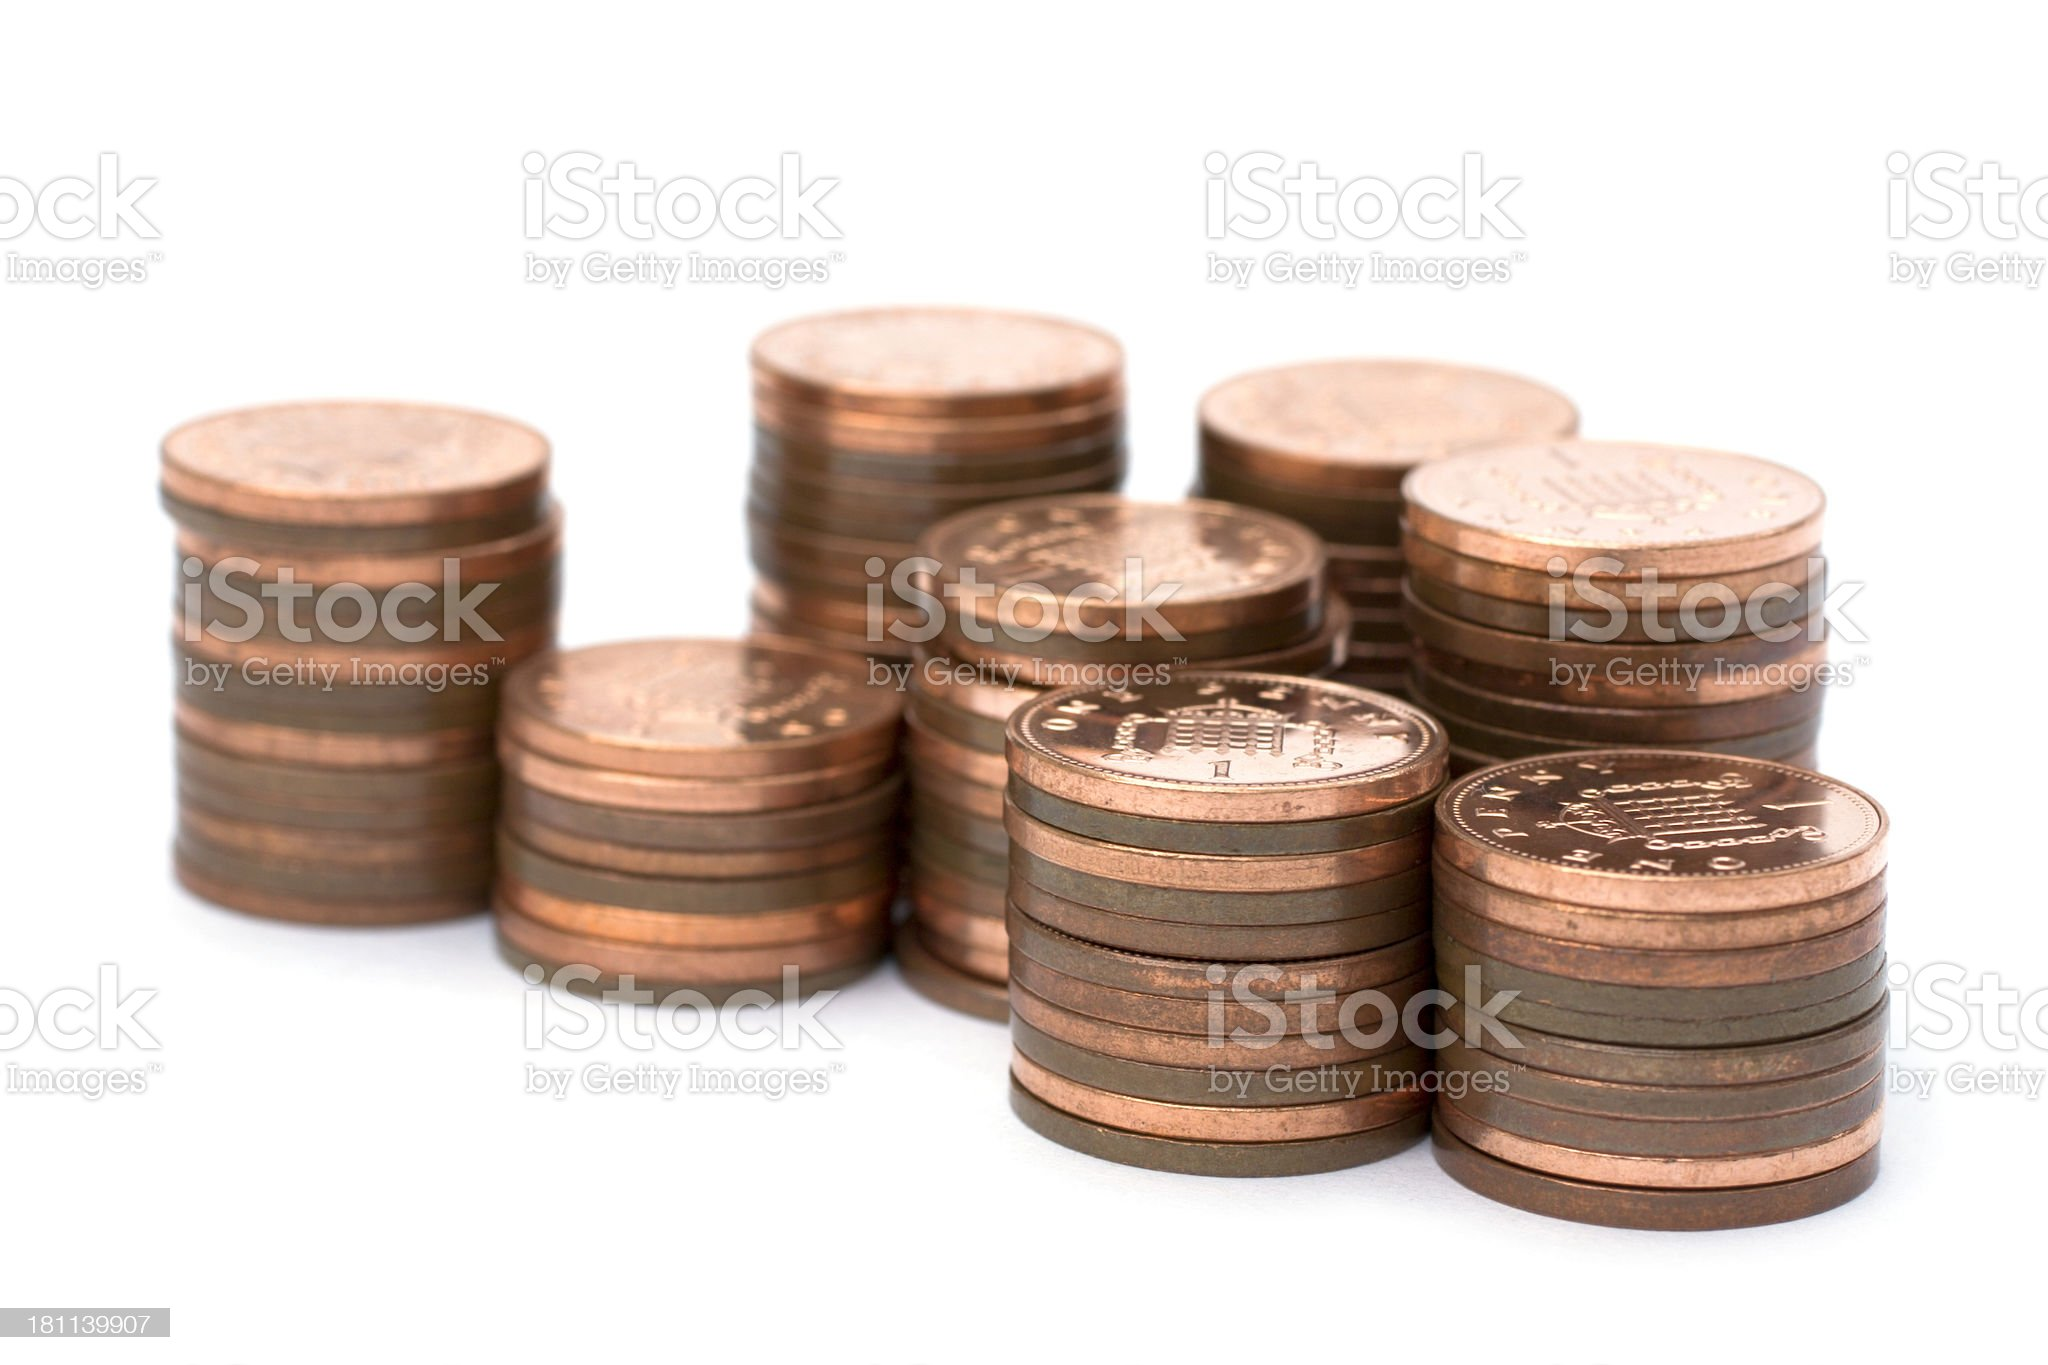 A picture of a stack of one pence pieces  royalty-free stock photo